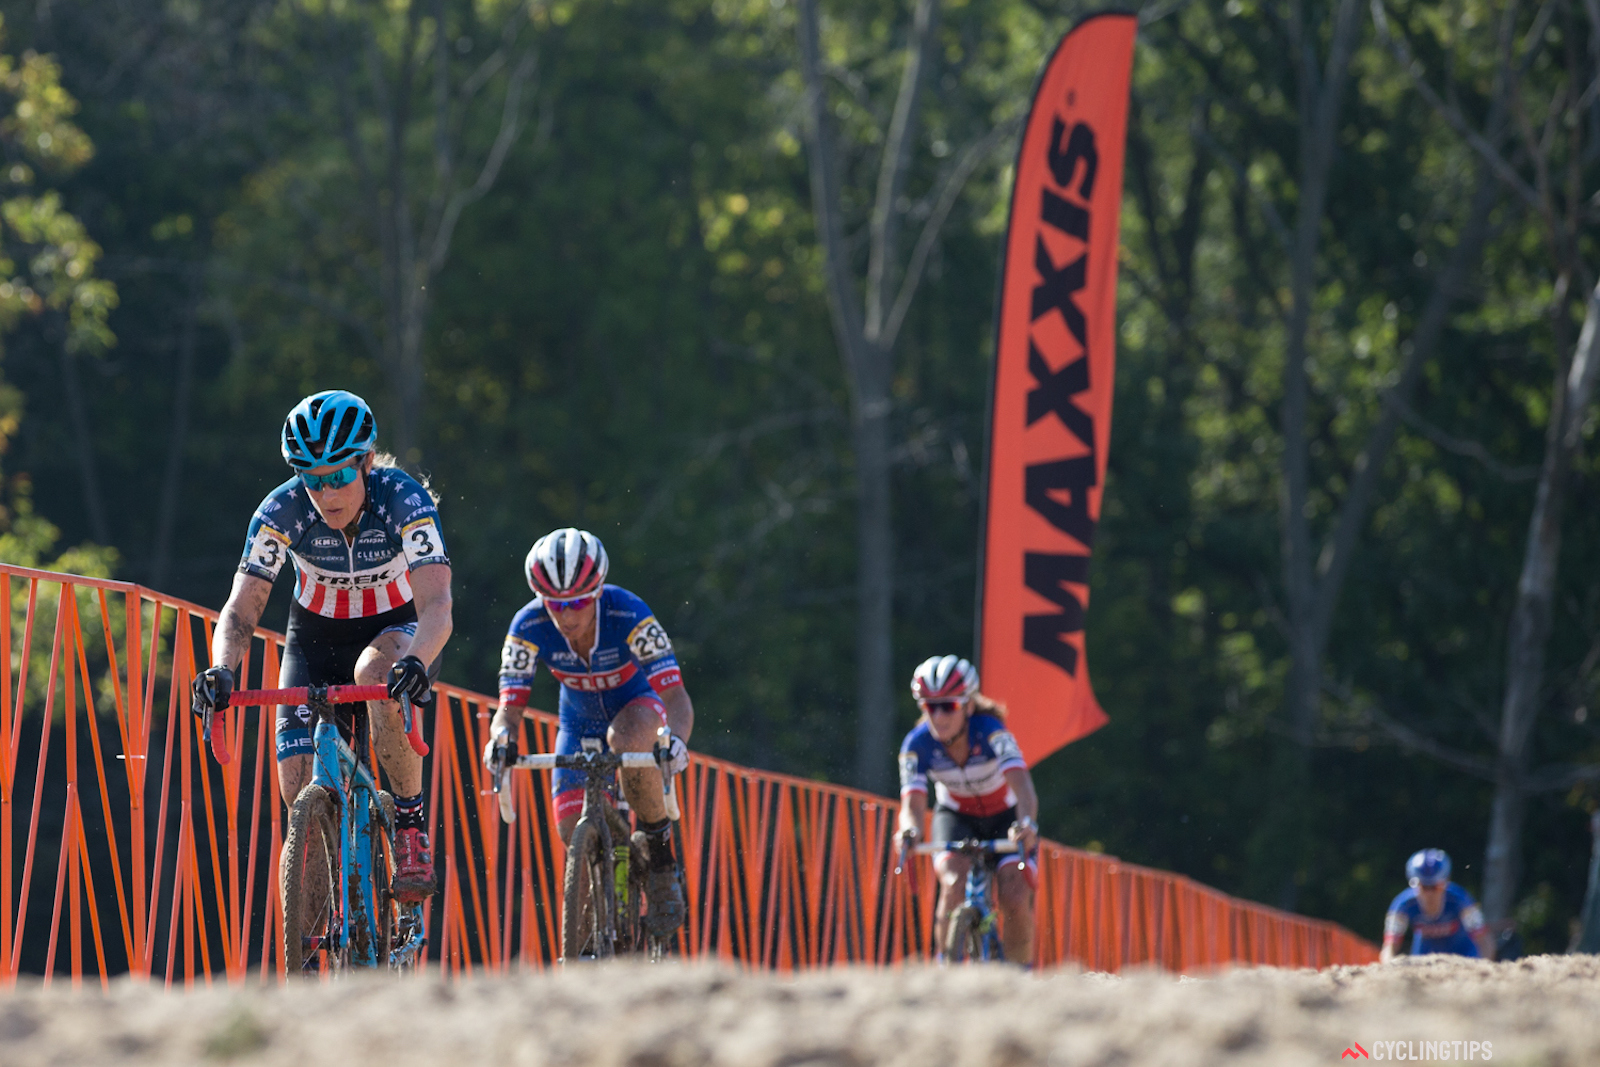 Compton led from start to finish, with only Nash able to ride with her, until a broken rear derailleur ended her podium chances. Photo: Wil Matthews/Jake Orness.